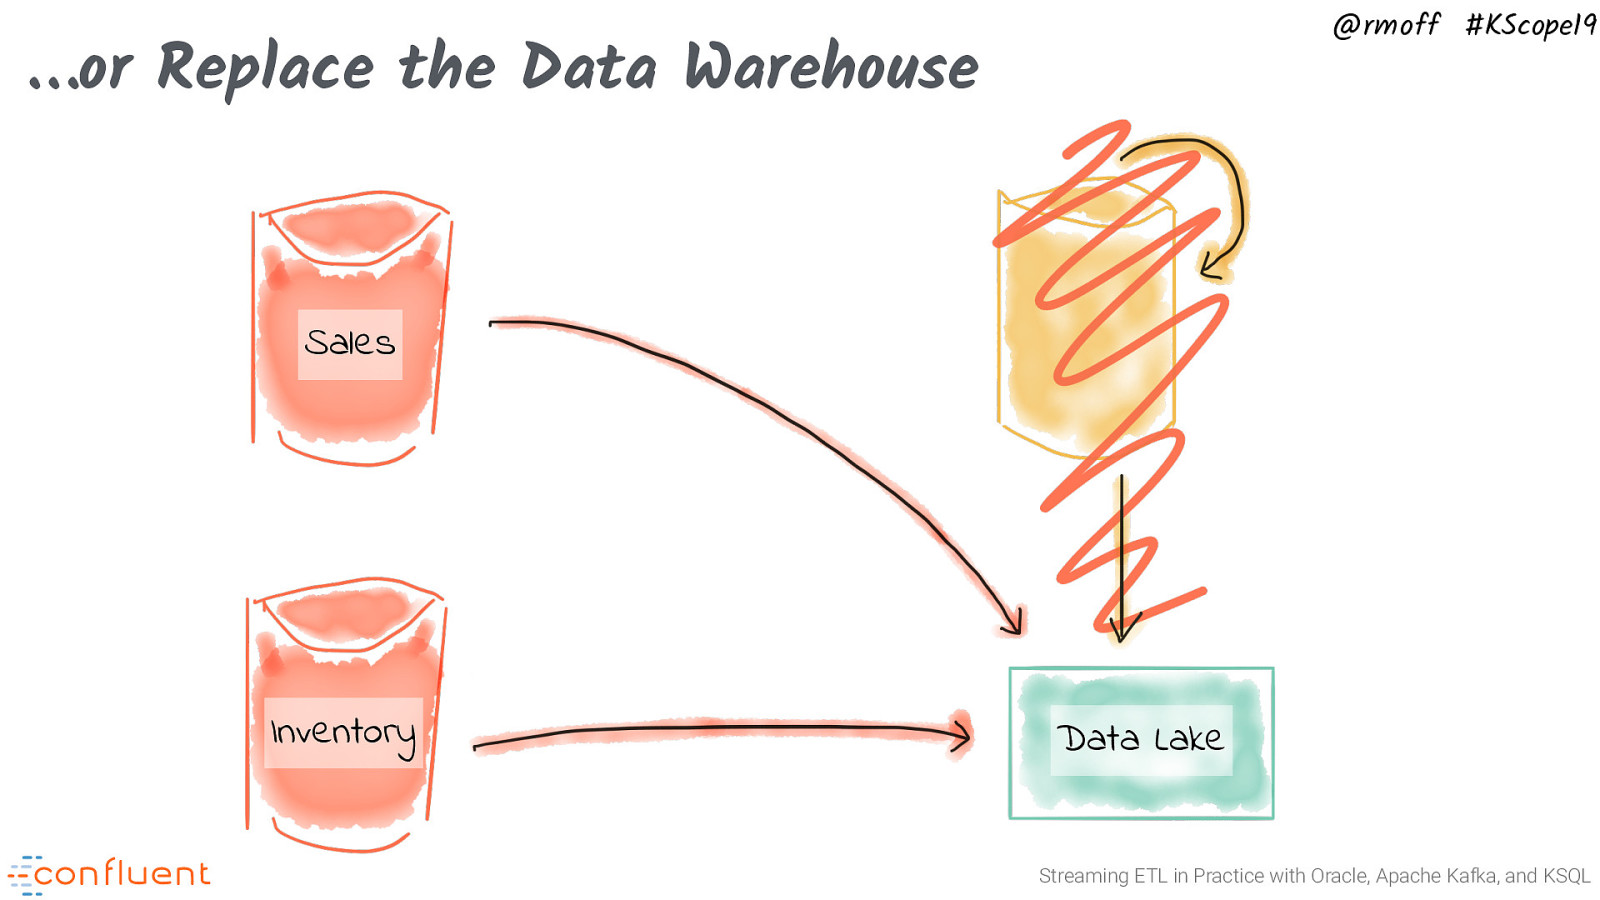 Streaming ETL in Practice with Oracle, Apache Kafka, and KSQL